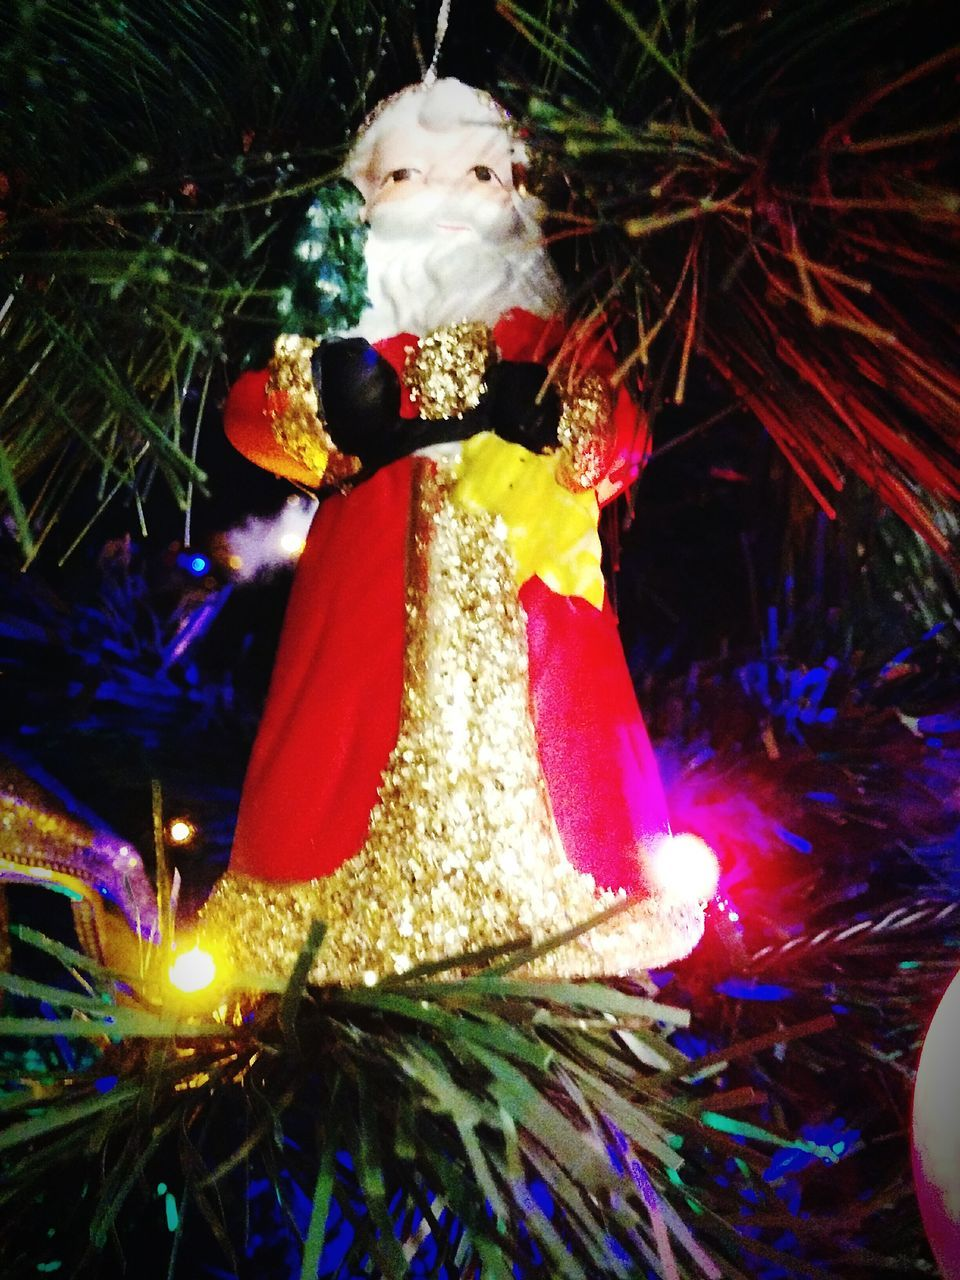 Low Angle View Of Illuminated Christmas Decoration